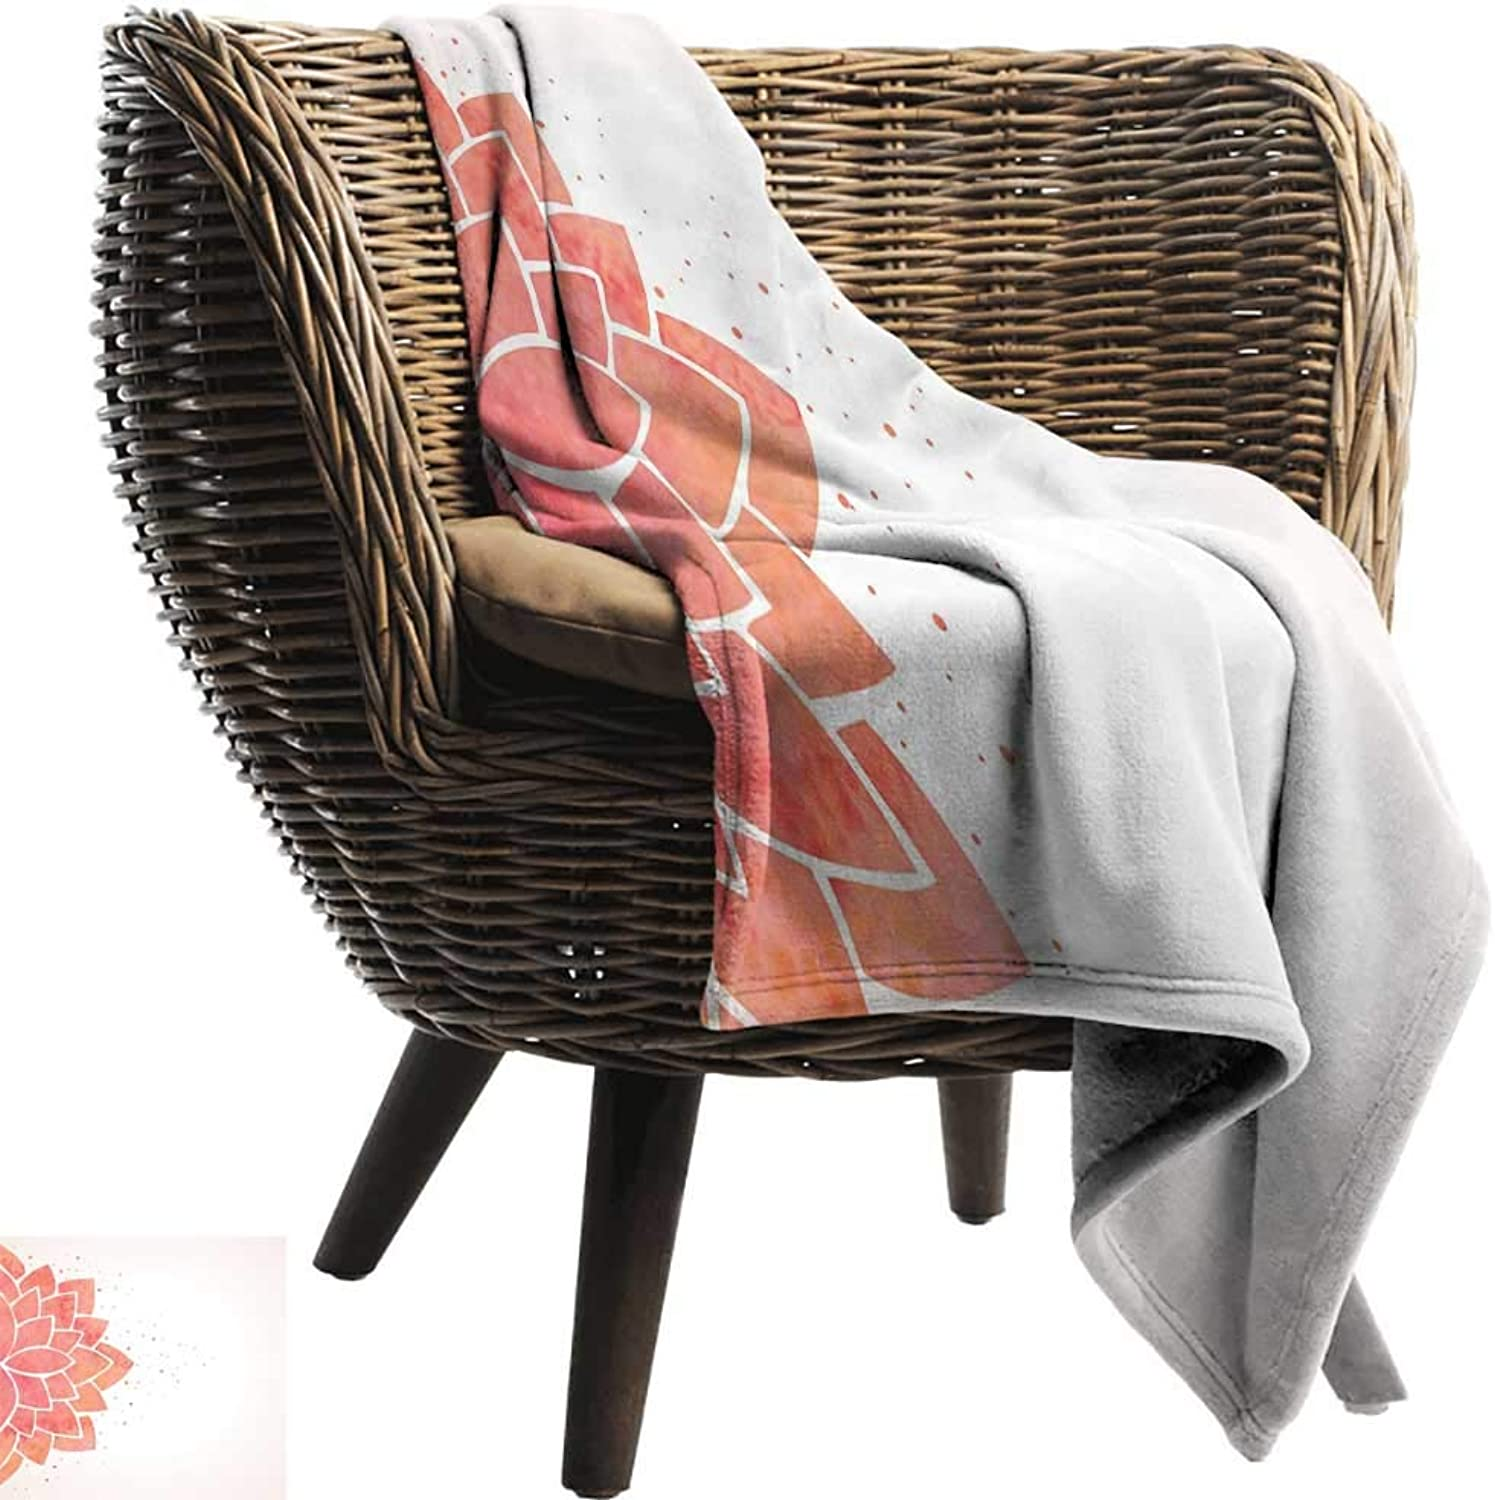 Nap Blanket Lotus Flower Aquarelle Style Half Lily Ayurveda Meditation Theme with Artistic Look Super Soft Cozy 60  W x 51  L Coral Pale Peach